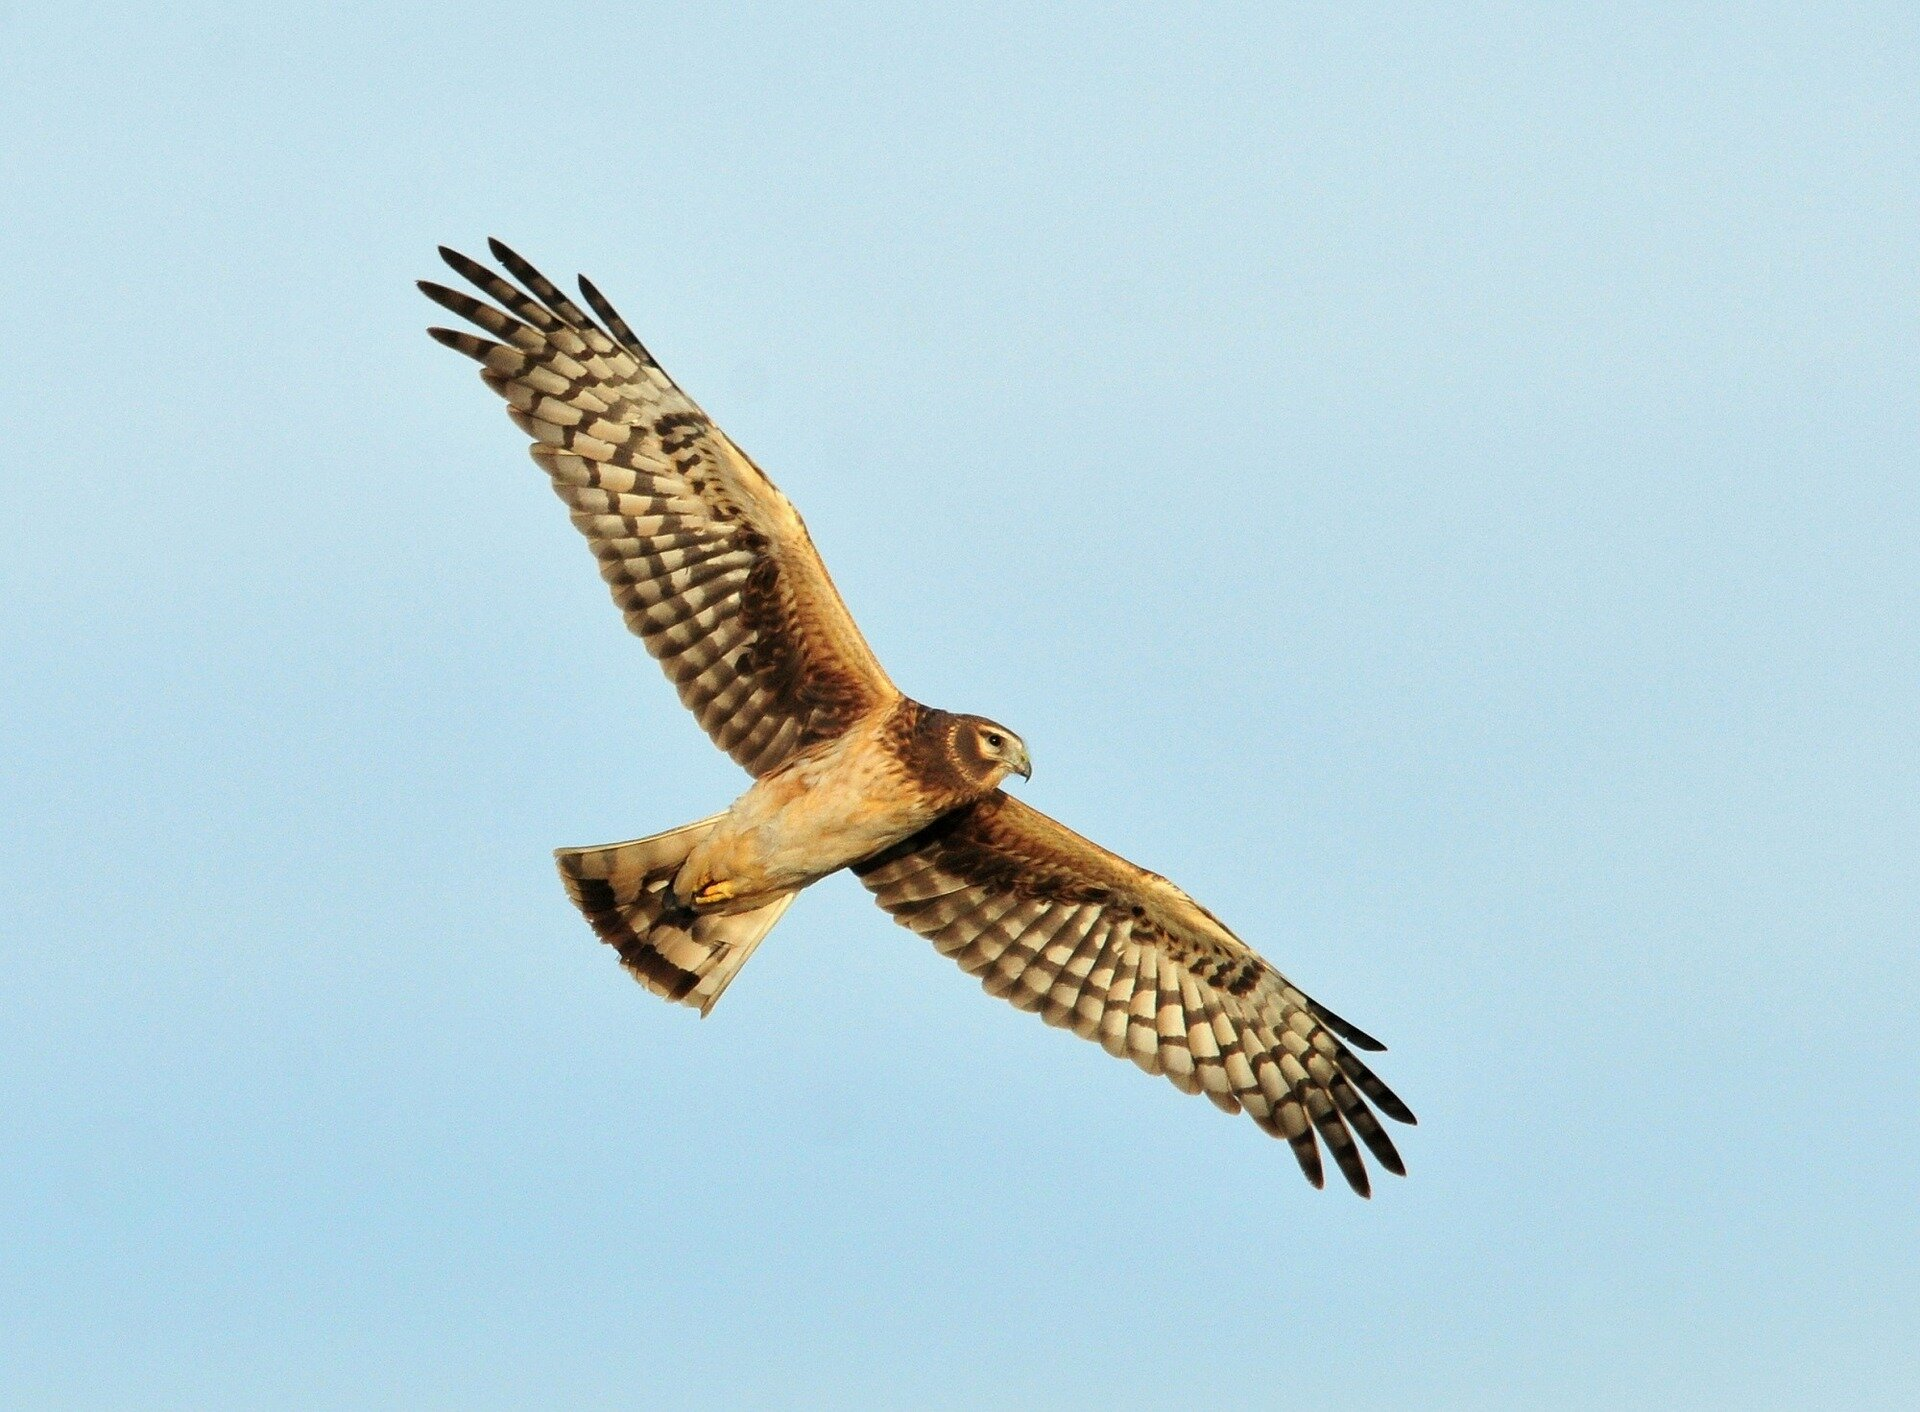 Study suggests widespread illegal killing of hen harriers on English grouse moors